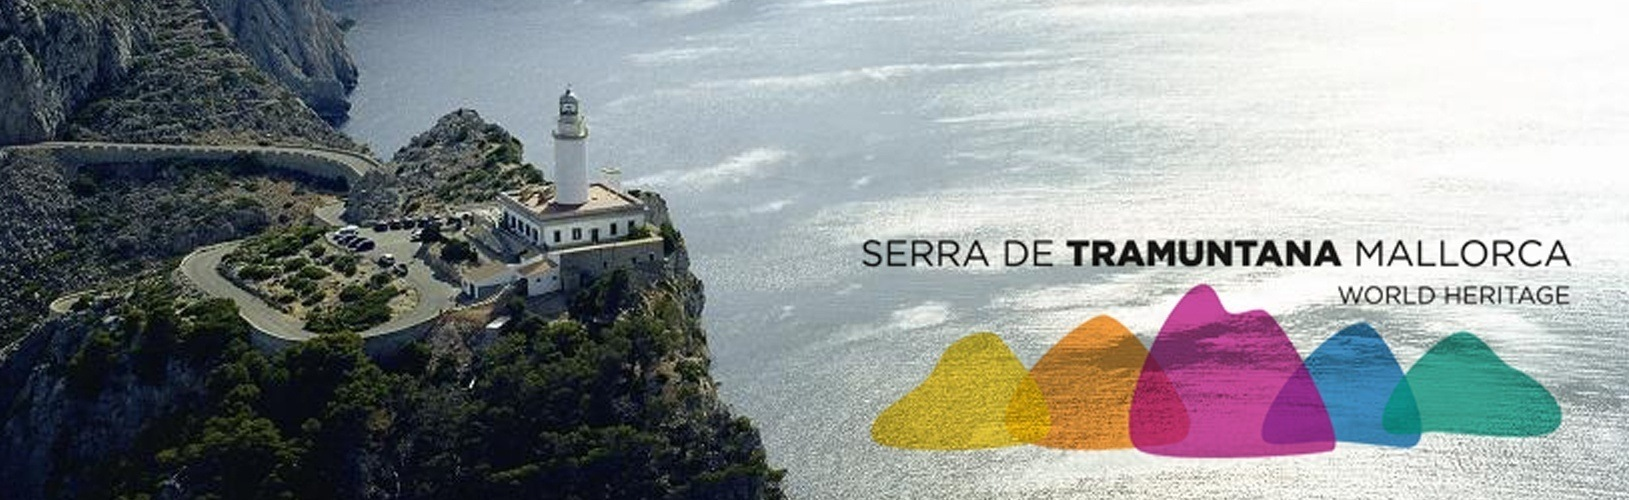 cabo_formentor-1